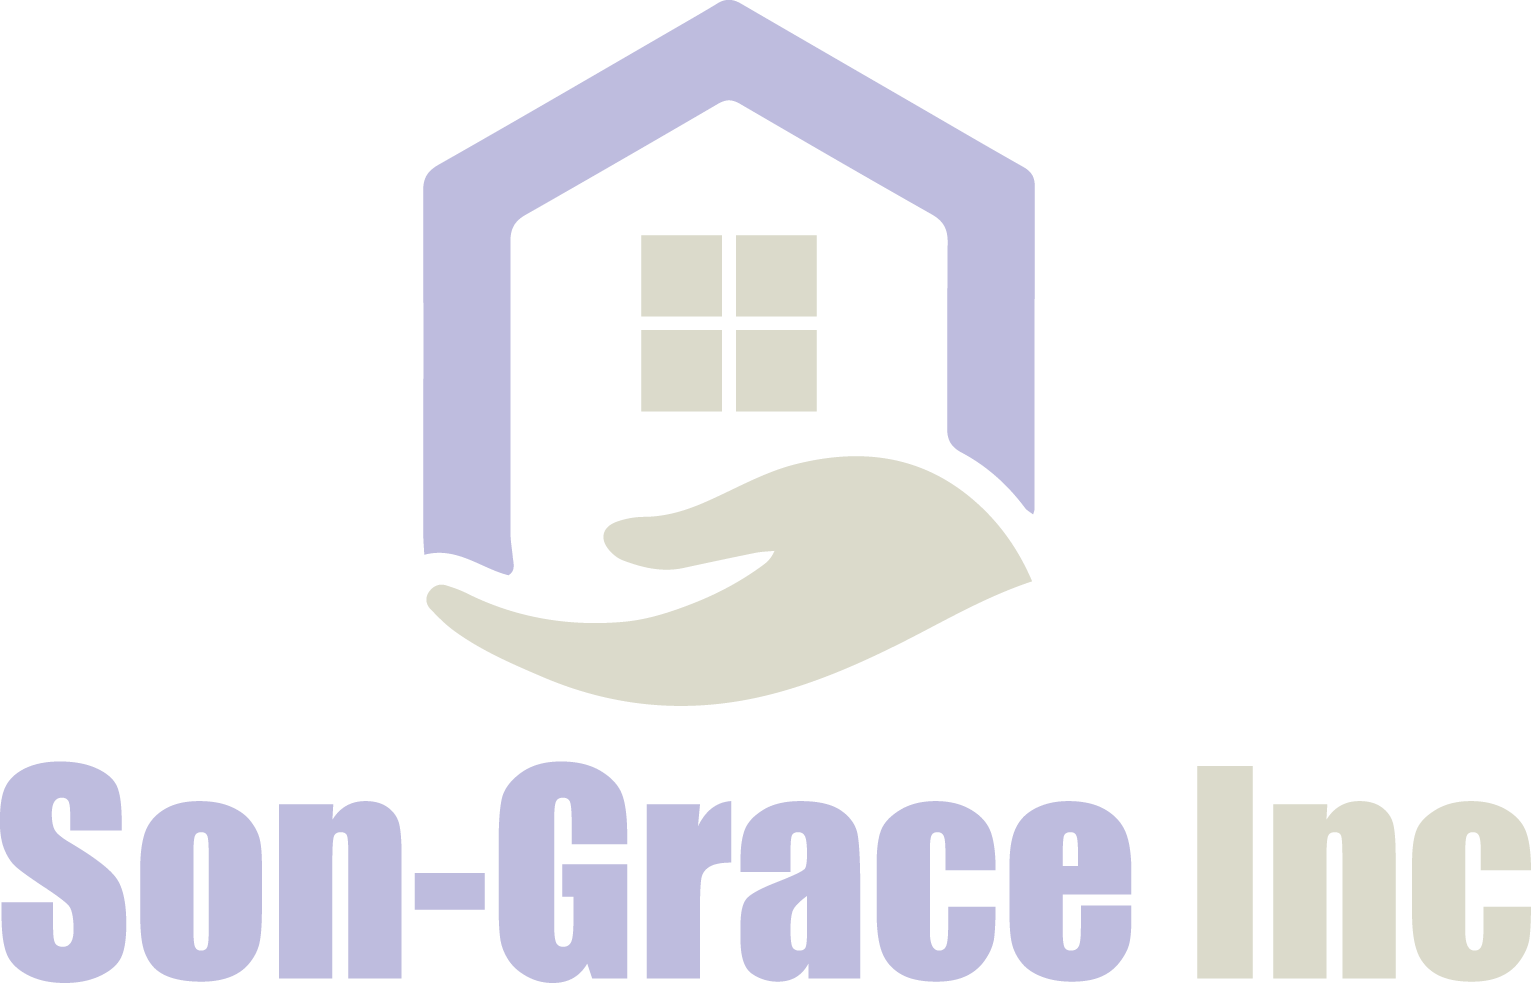 WHY CHOOSE SON GRACE INC? - Ø  A trusted provider of personal care services that are tailored to meet individual needsØ  A level of service that meets and exceeds the healthcare industry's standardsØ  24-hour services, including all holidays and weekendsØ  A cost effective and comforting solution to residing in a hospital, nursing home, or assisted living communityØ  24-hour turnaround time for new referralsØ  Highly trained, screened, and credentialed healthcare professionalsØ  Client to caregiver matching service to ensure compatibilityØ  Regular assessments by management to ensure client satisfactionØ  Flexible payment options, including the acceptance of most insurancesØ  Free in home consultation